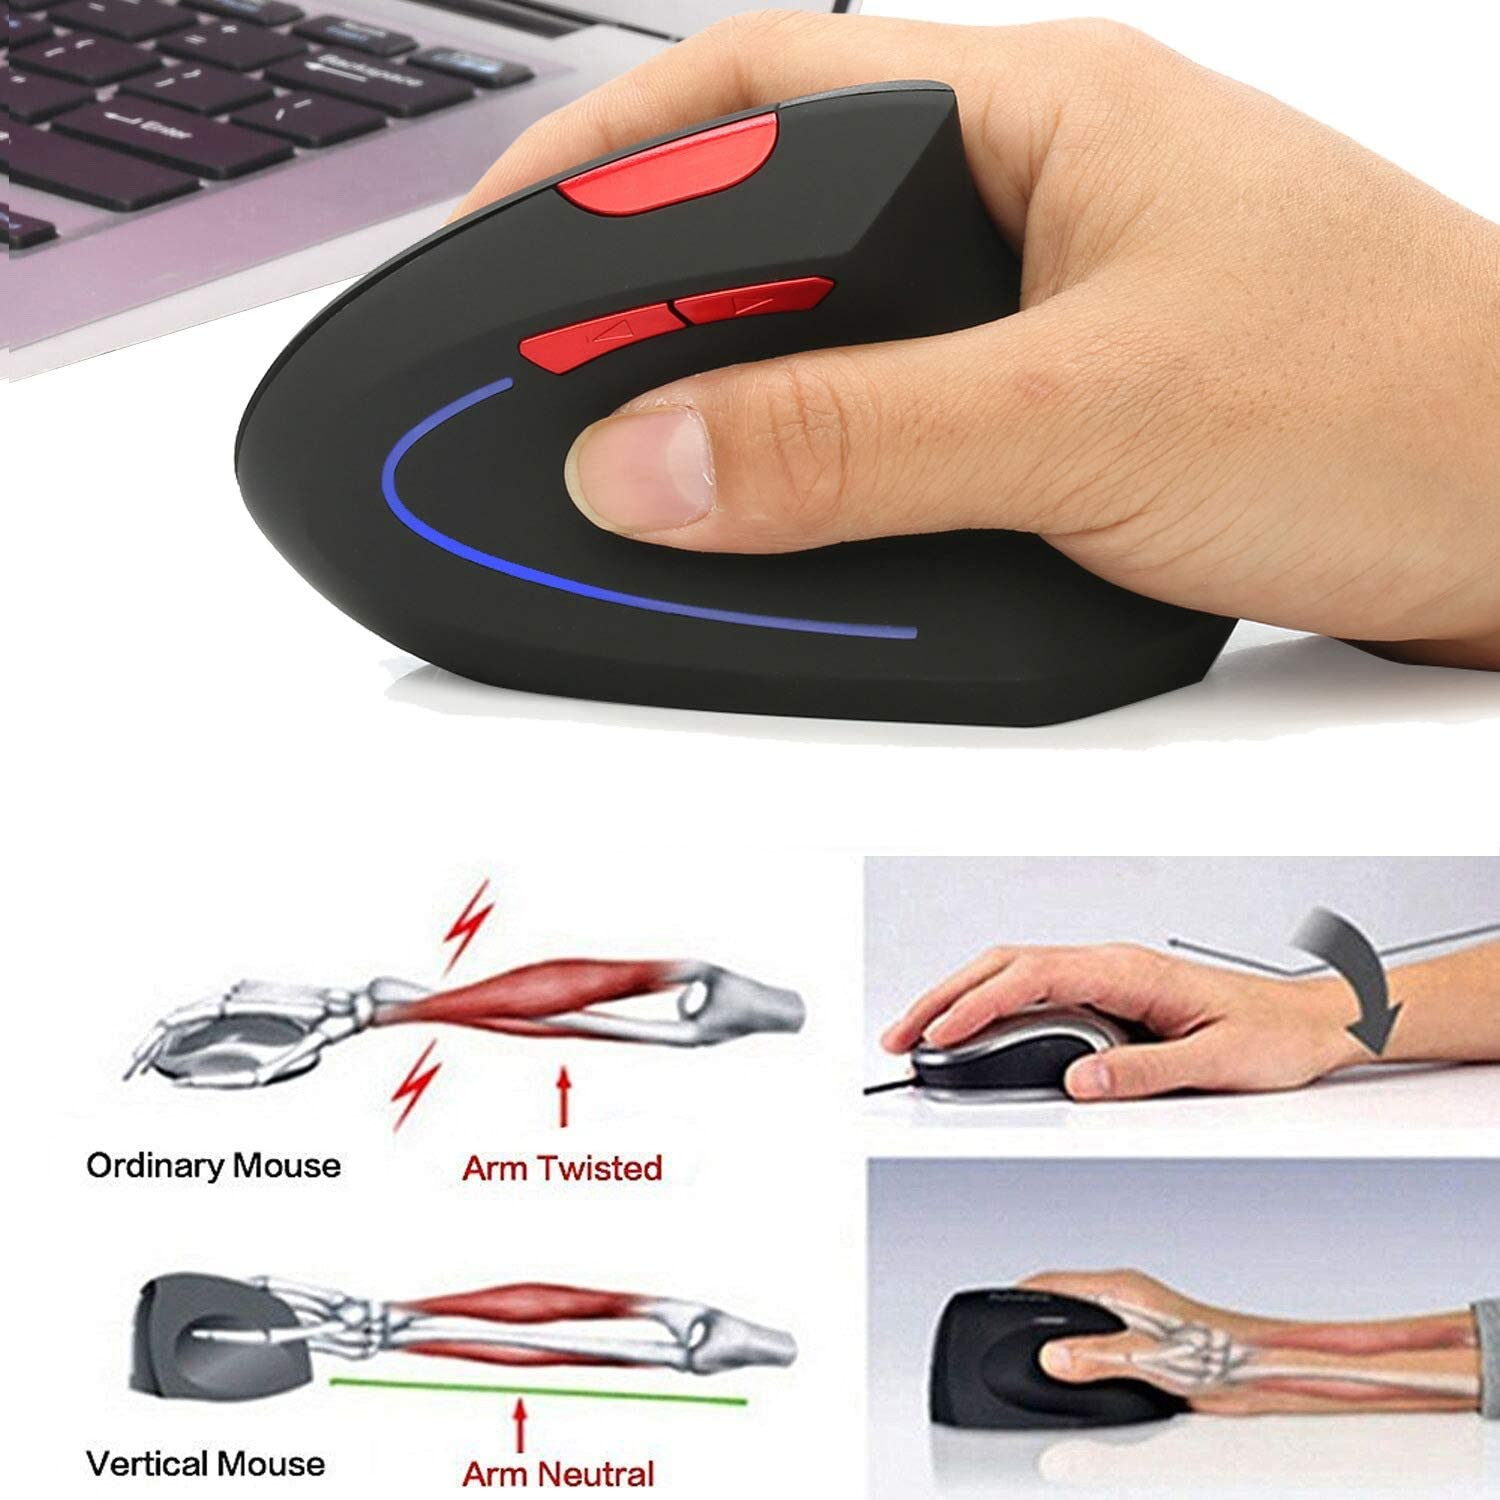 2.4Ghz Mouse Ergonomic Design 800Dpi//1600Dpi GWX Vertical Wireless Mouse 2400Dpi Avoid Carpal Tunnel Syndrome for Office Games,Gray